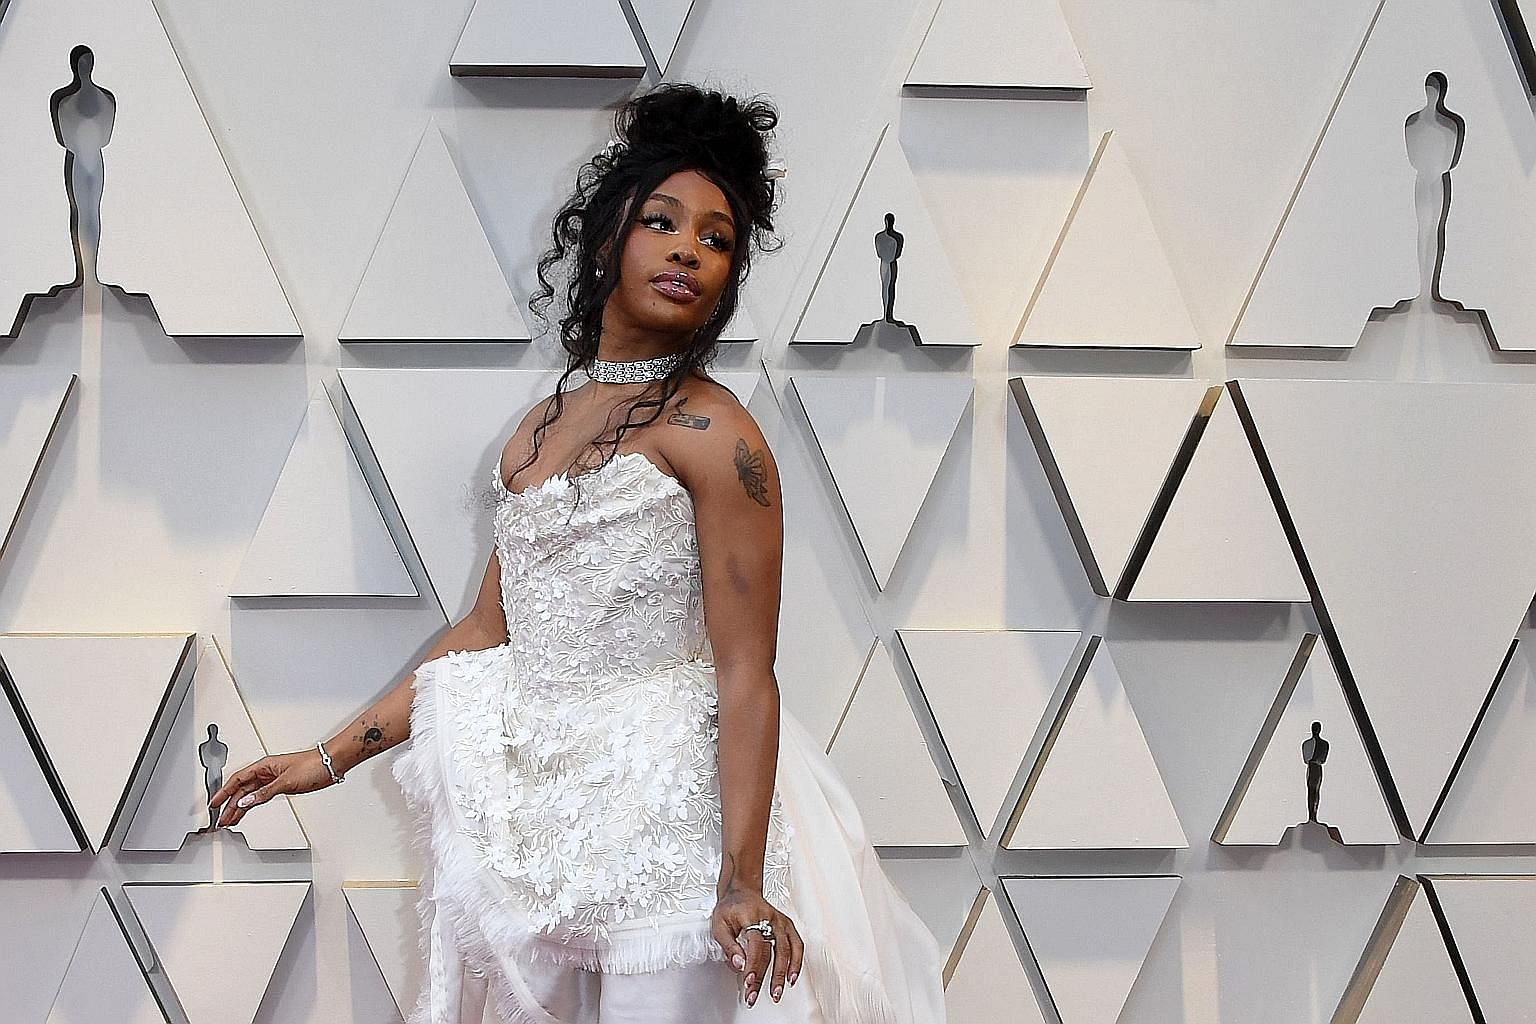 """Sephora has apologised to R&B star SZA (above) after she said a store employee in California """"called security to make sure I wasn't stealing""""."""